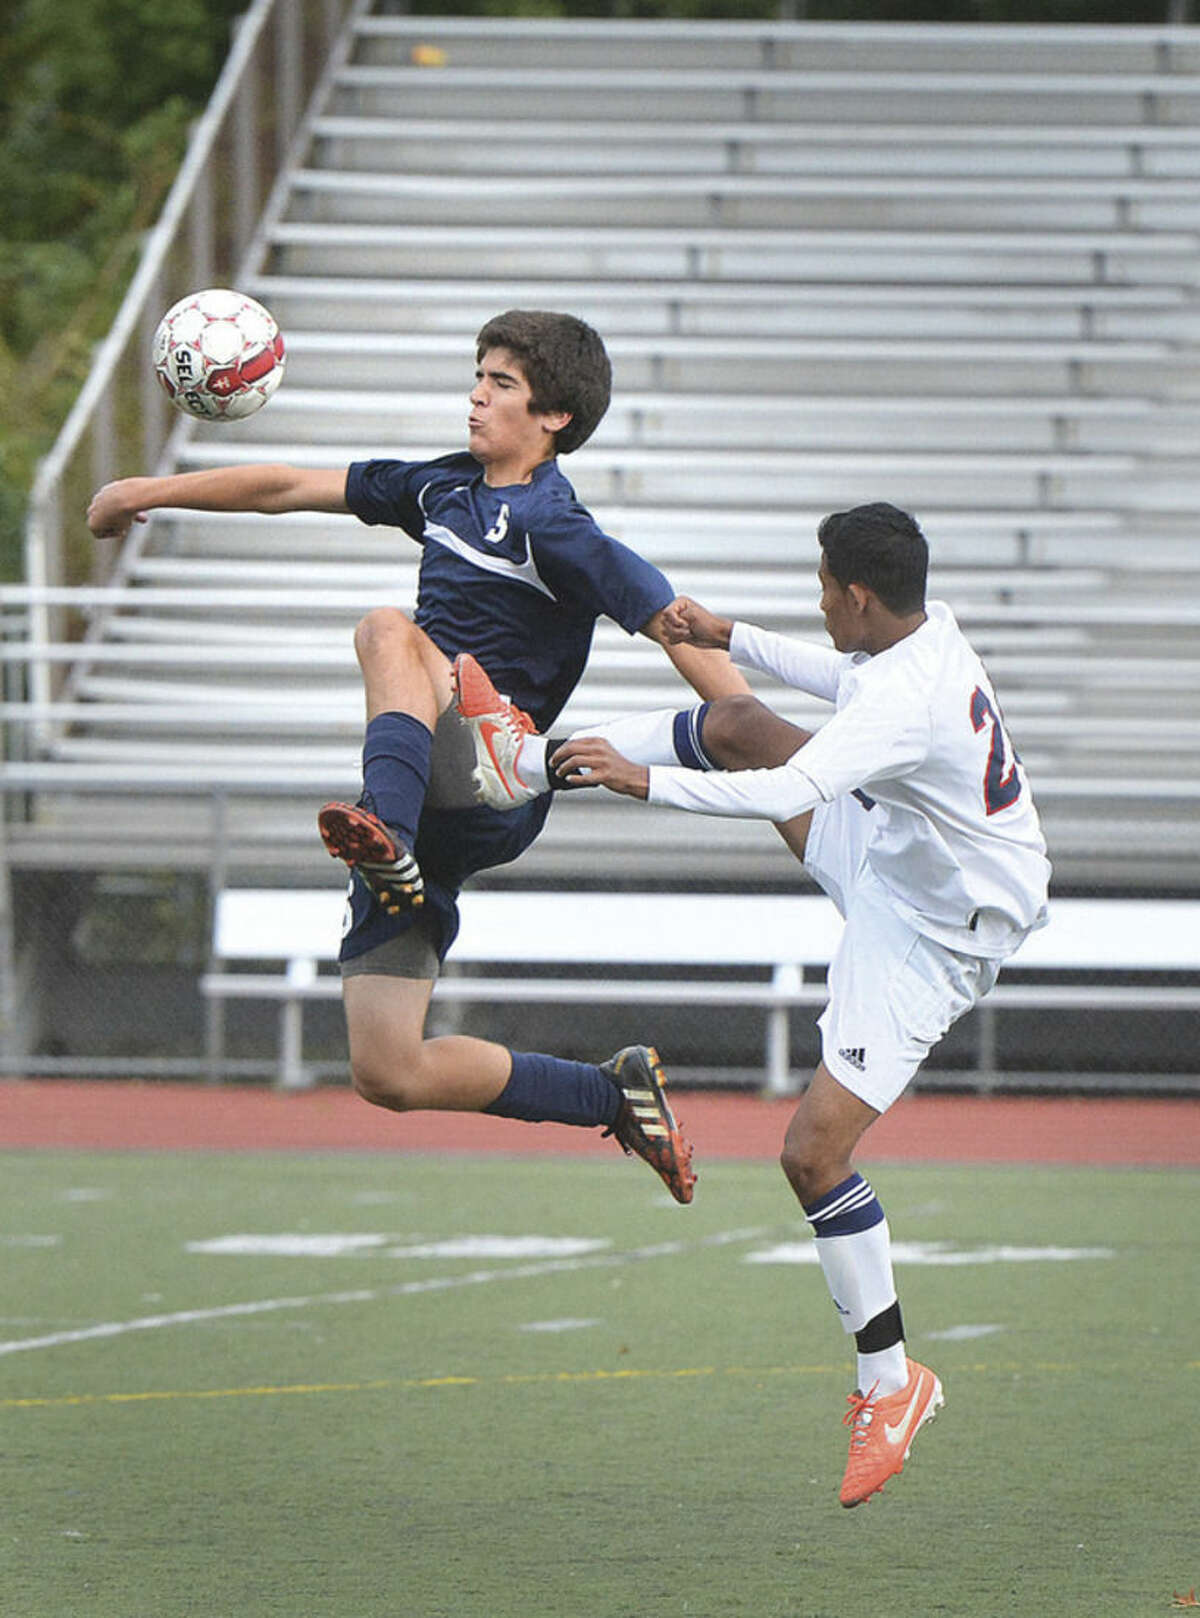 Hour photo/Alex von Kleydorff Staples' Jerrett Rende jumps in front of McMahon's Edison Pena to keep the ball away from him Tuesday. Staples won 1-0.